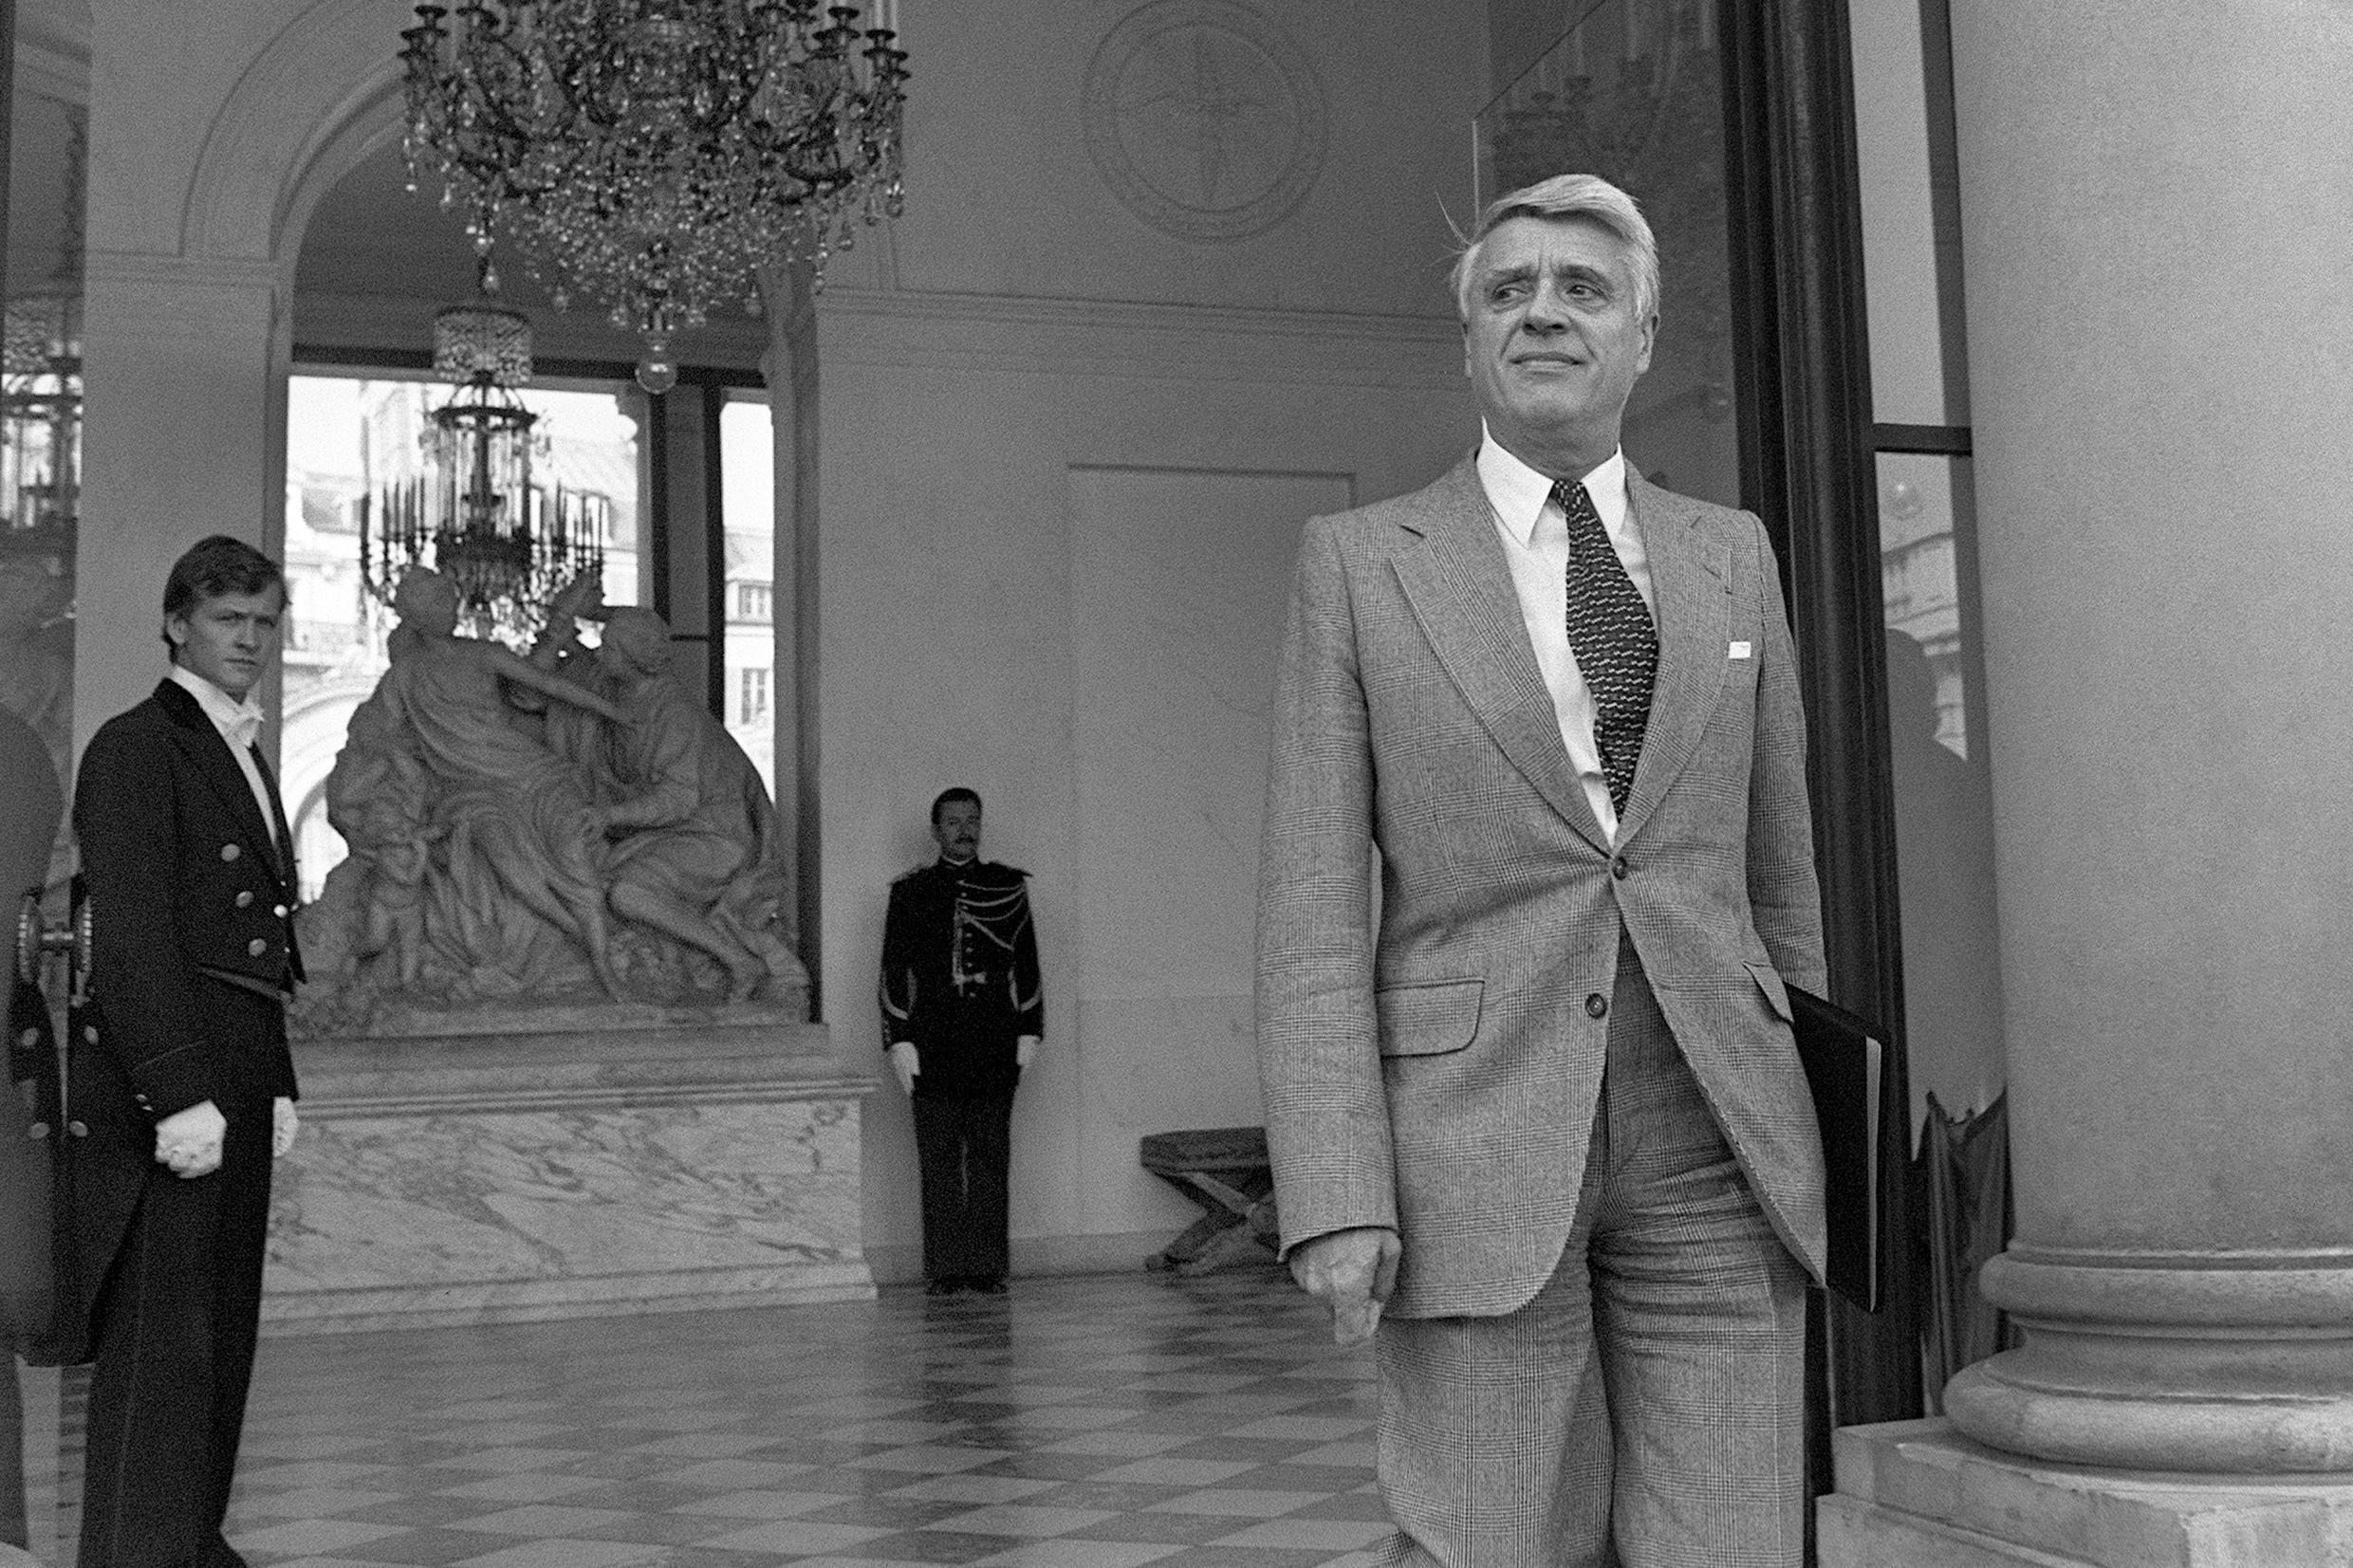 Robert Boulin at the Elysee palace in Paris on 26 September 1979, just weeks before his death